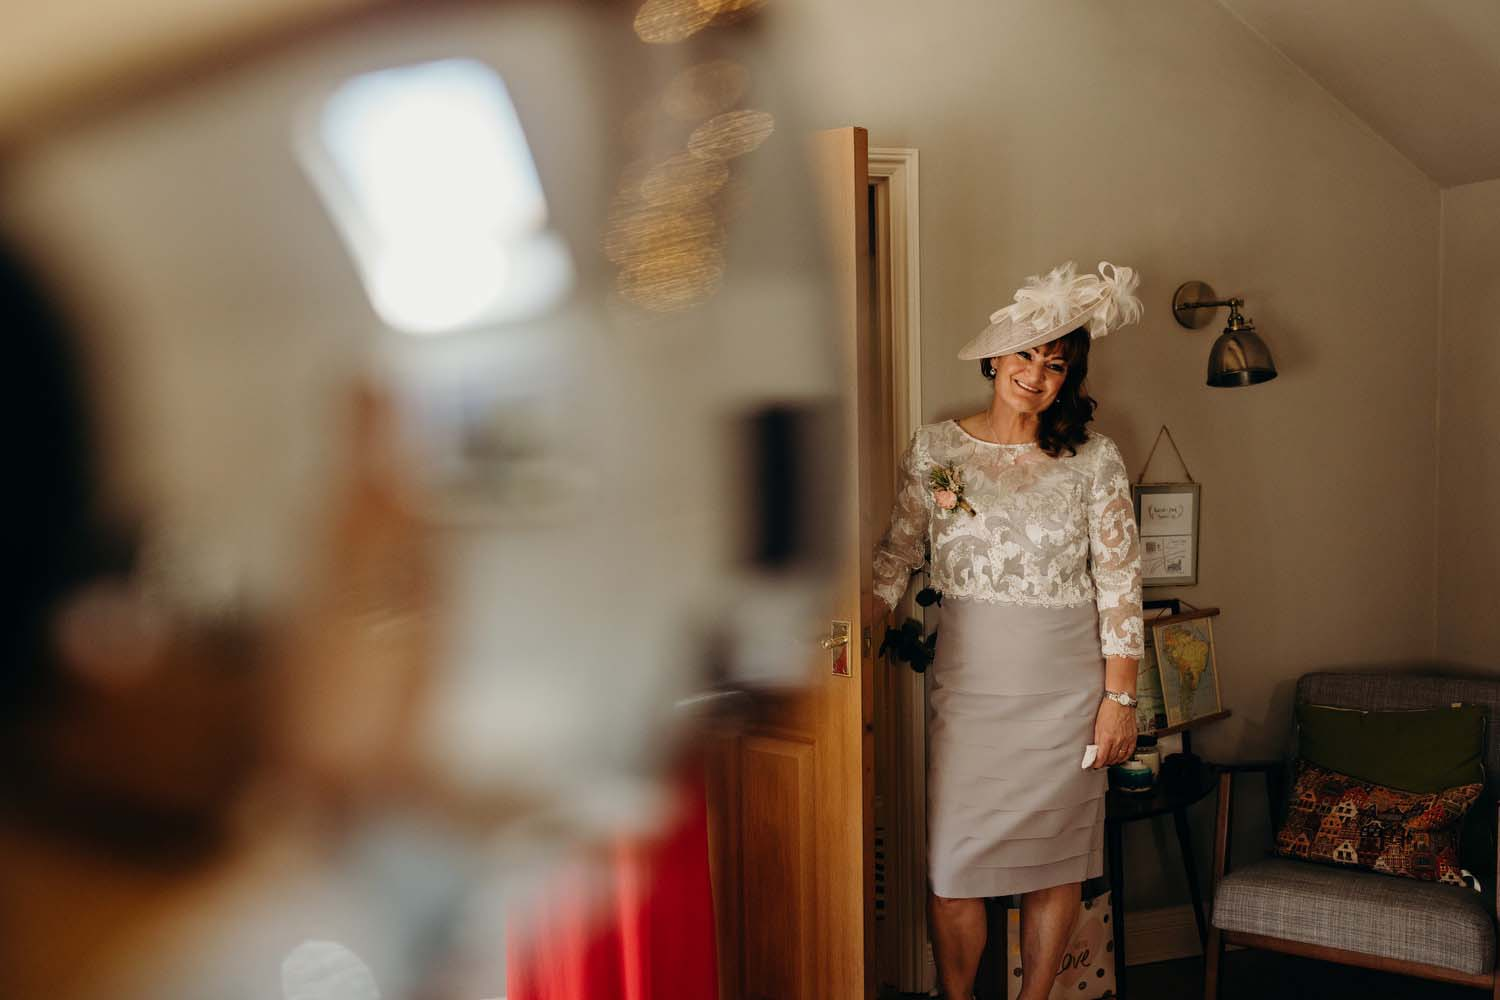 Mother sees daughter in wedding dress